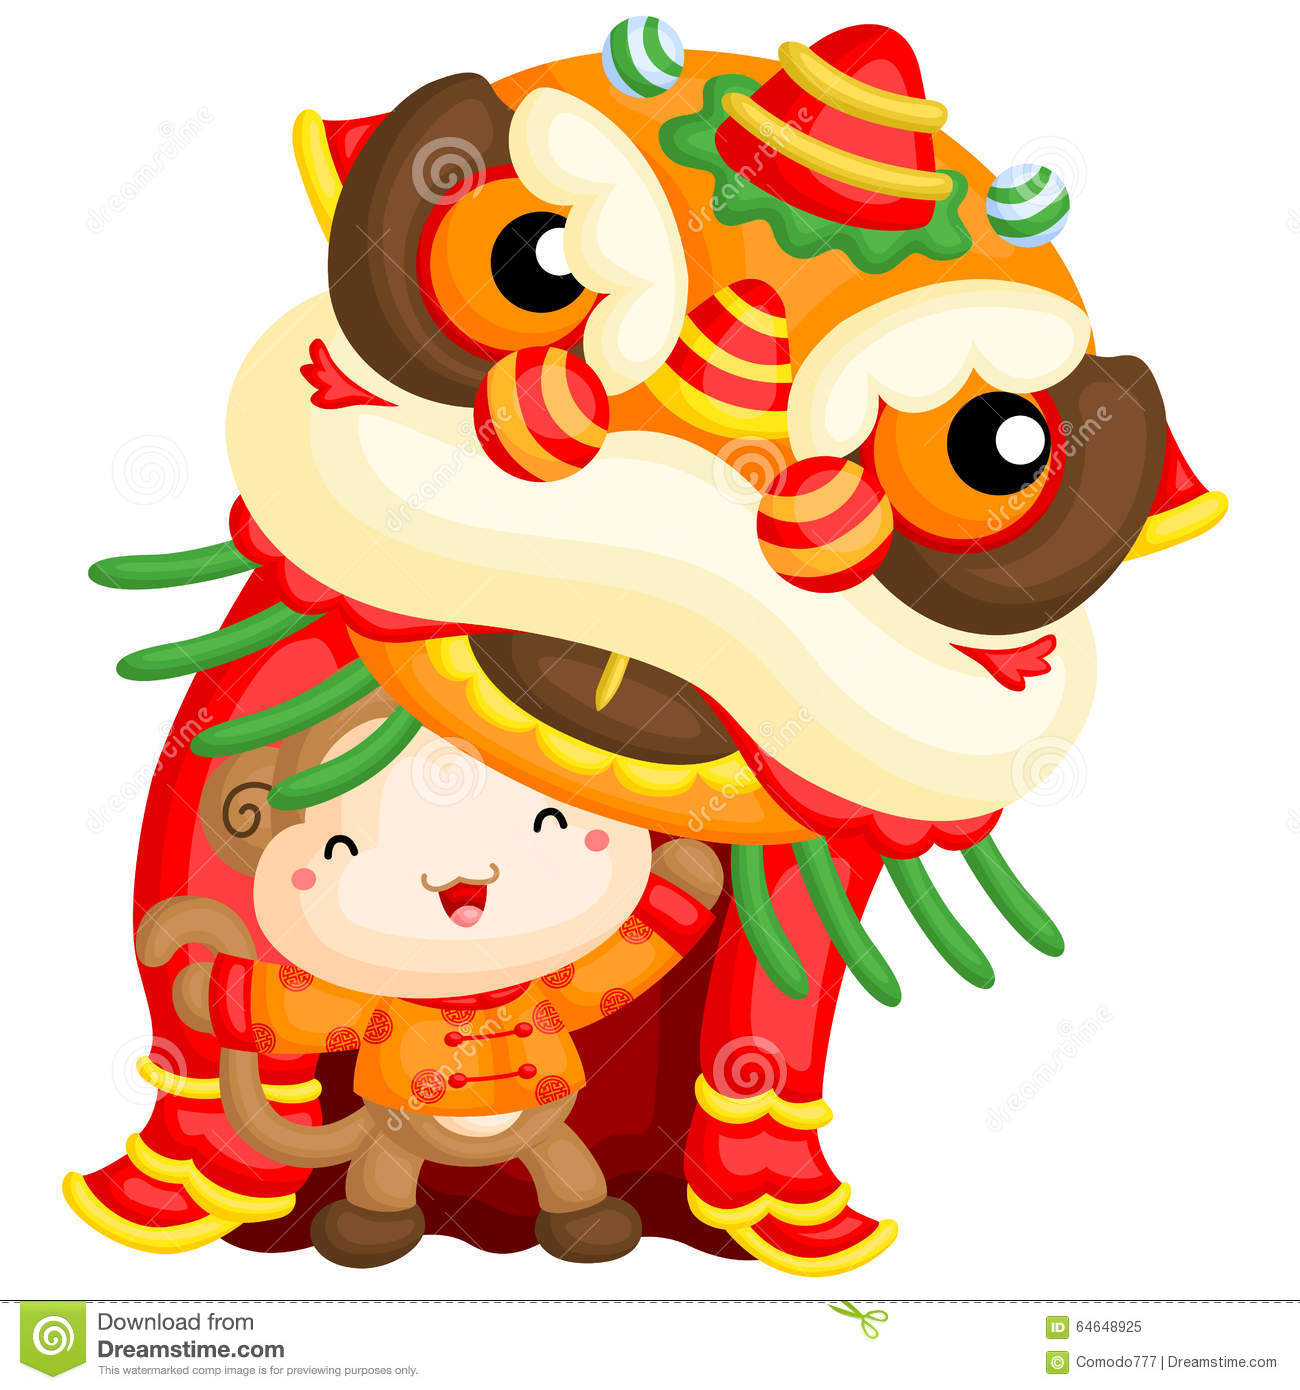 Chinese new year card with plum blossom and lion dance vector.